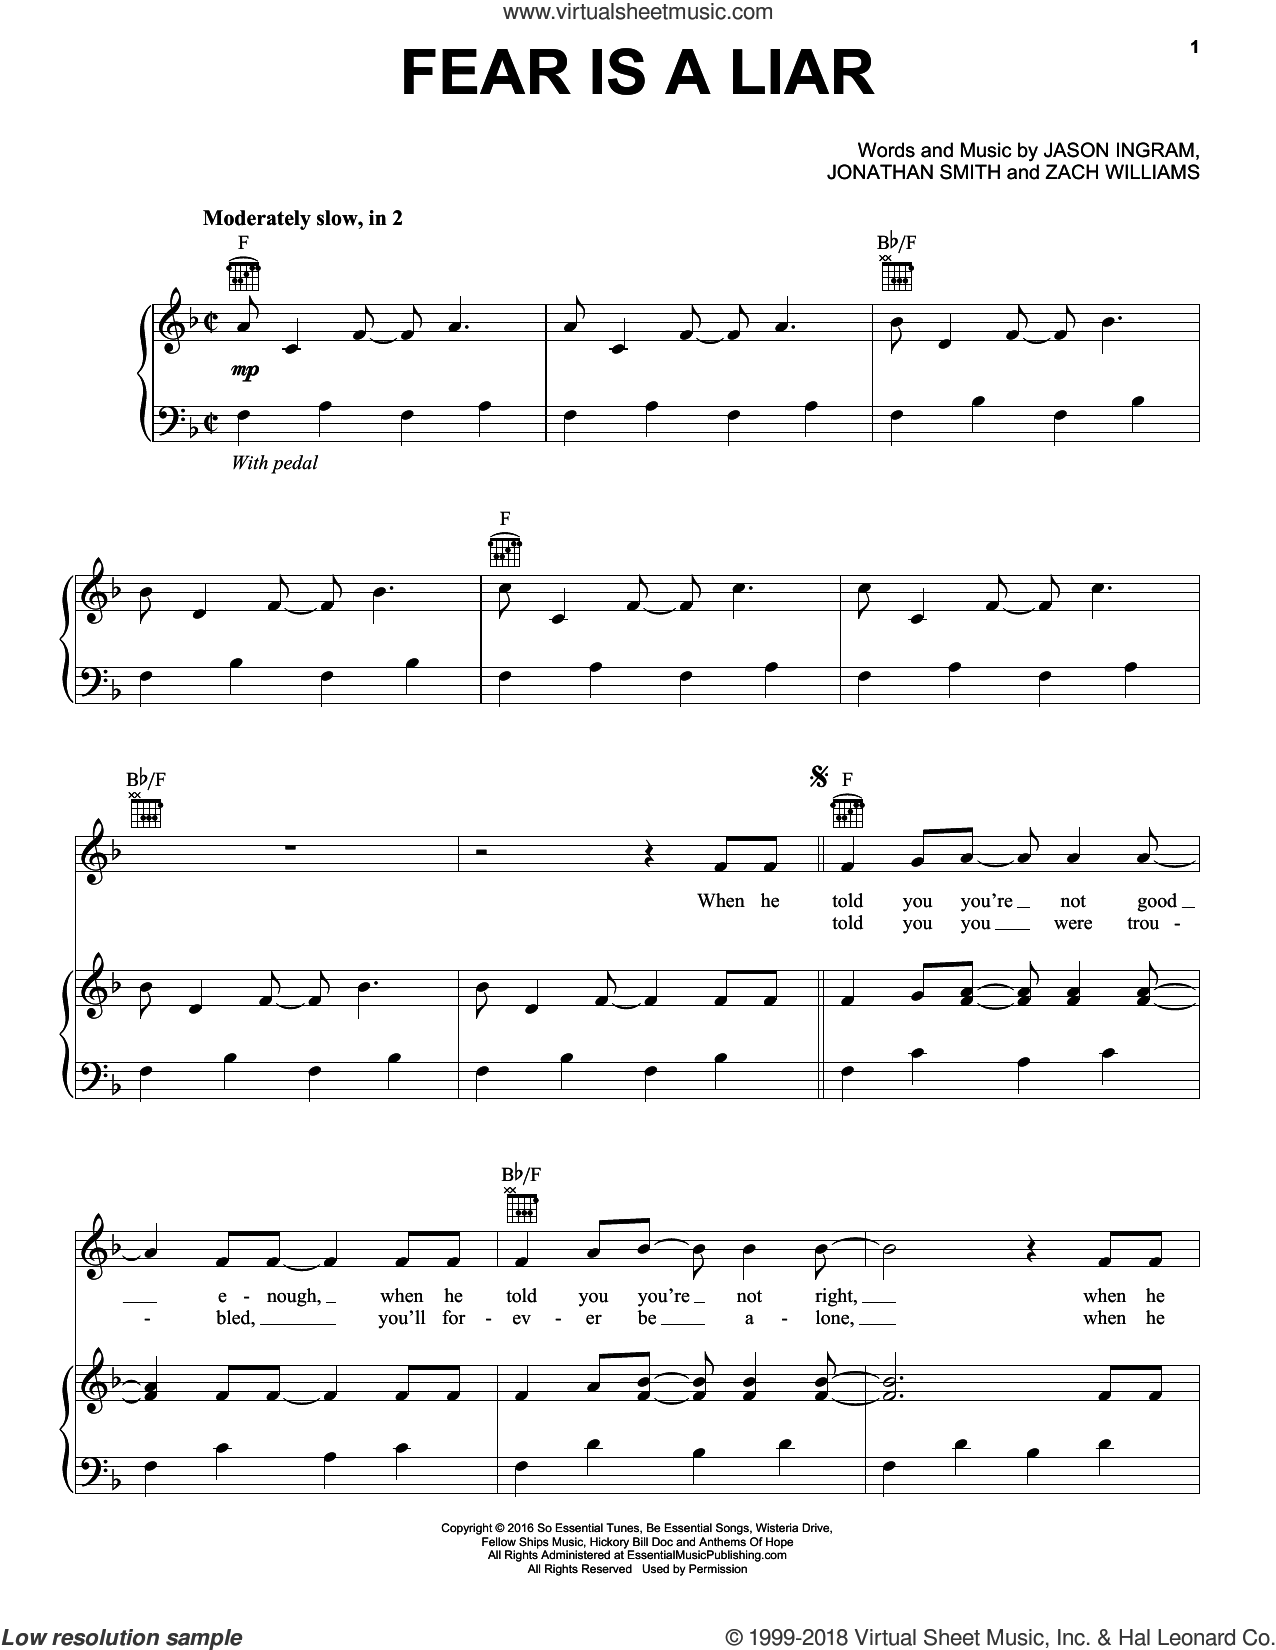 Fear Is A Liar sheet music for voice, piano or guitar by Zach Williams, Jason Ingram and Jonathan Smith, intermediate skill level